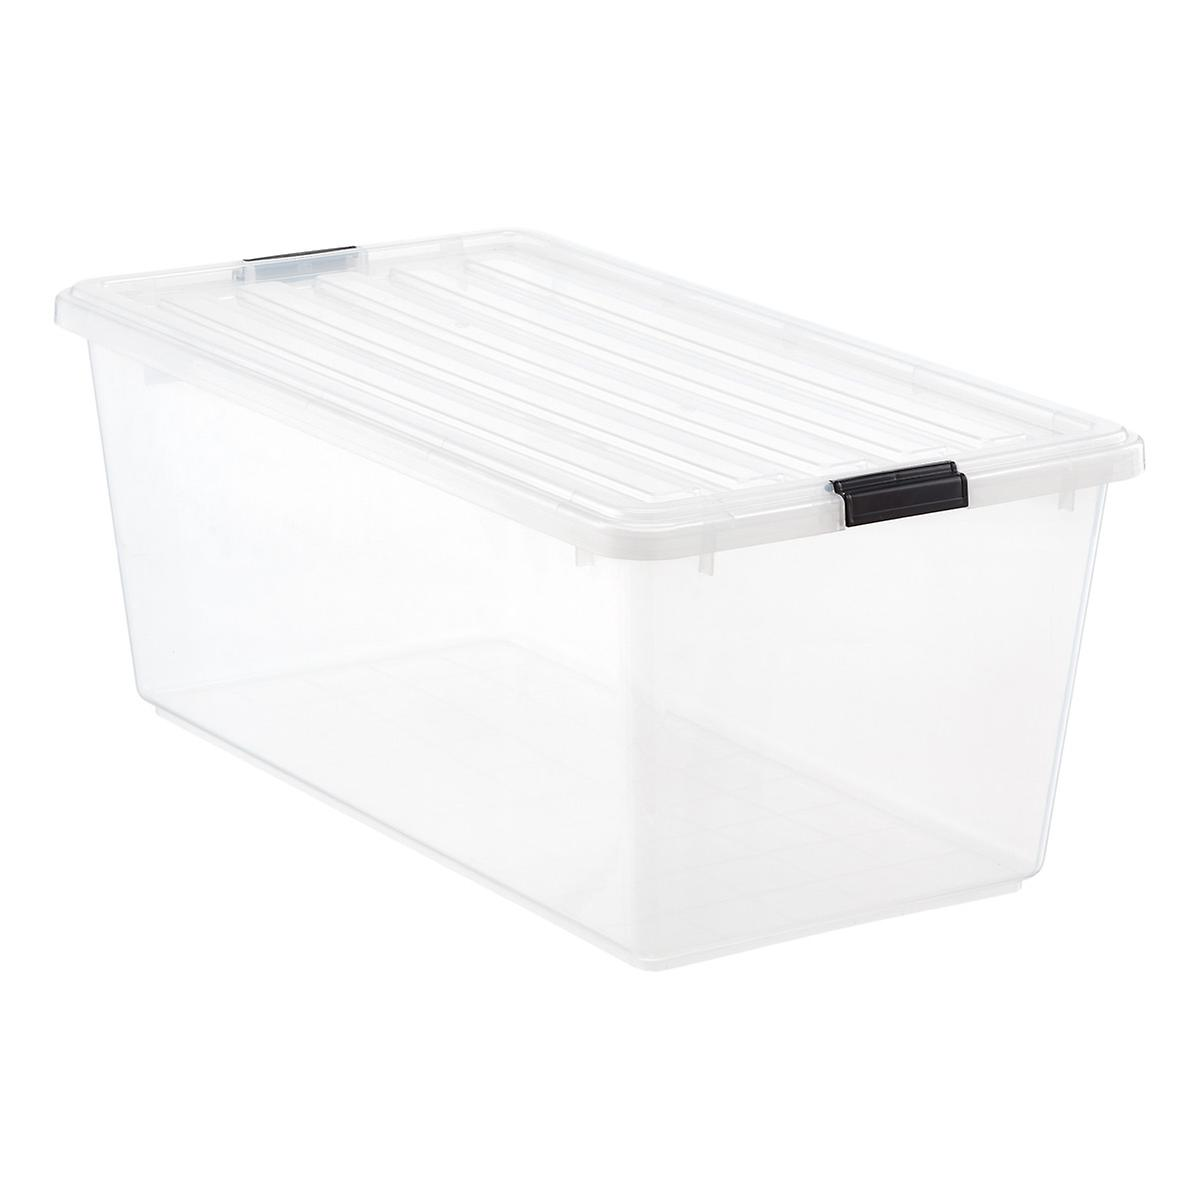 22.75 gal. Clear Tote with Locking Lid Case of 4 | The Container Store